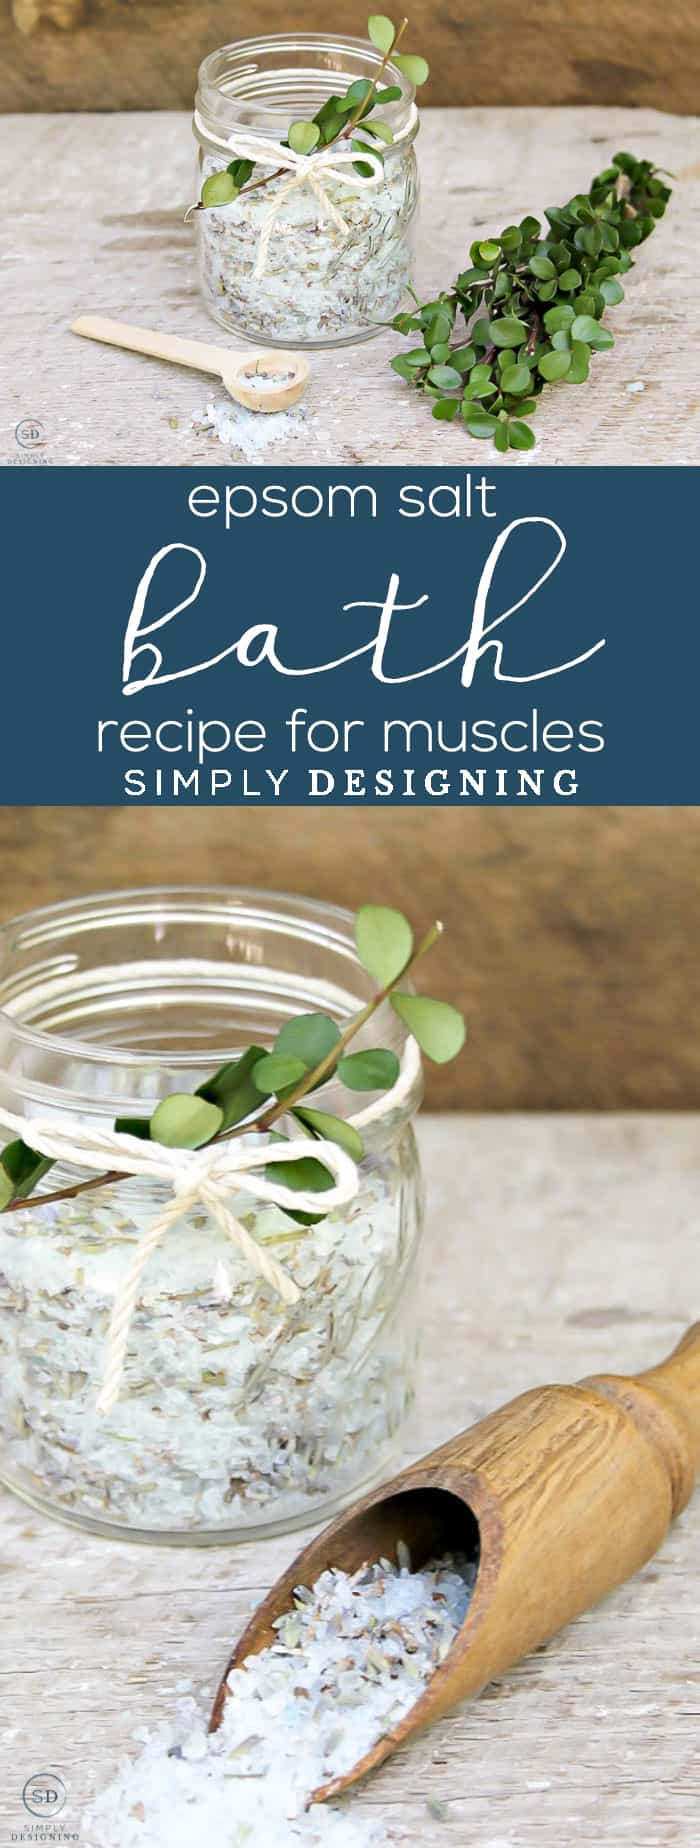 Epsom Salt Bath Recipe for Muscles _ Simply Designing